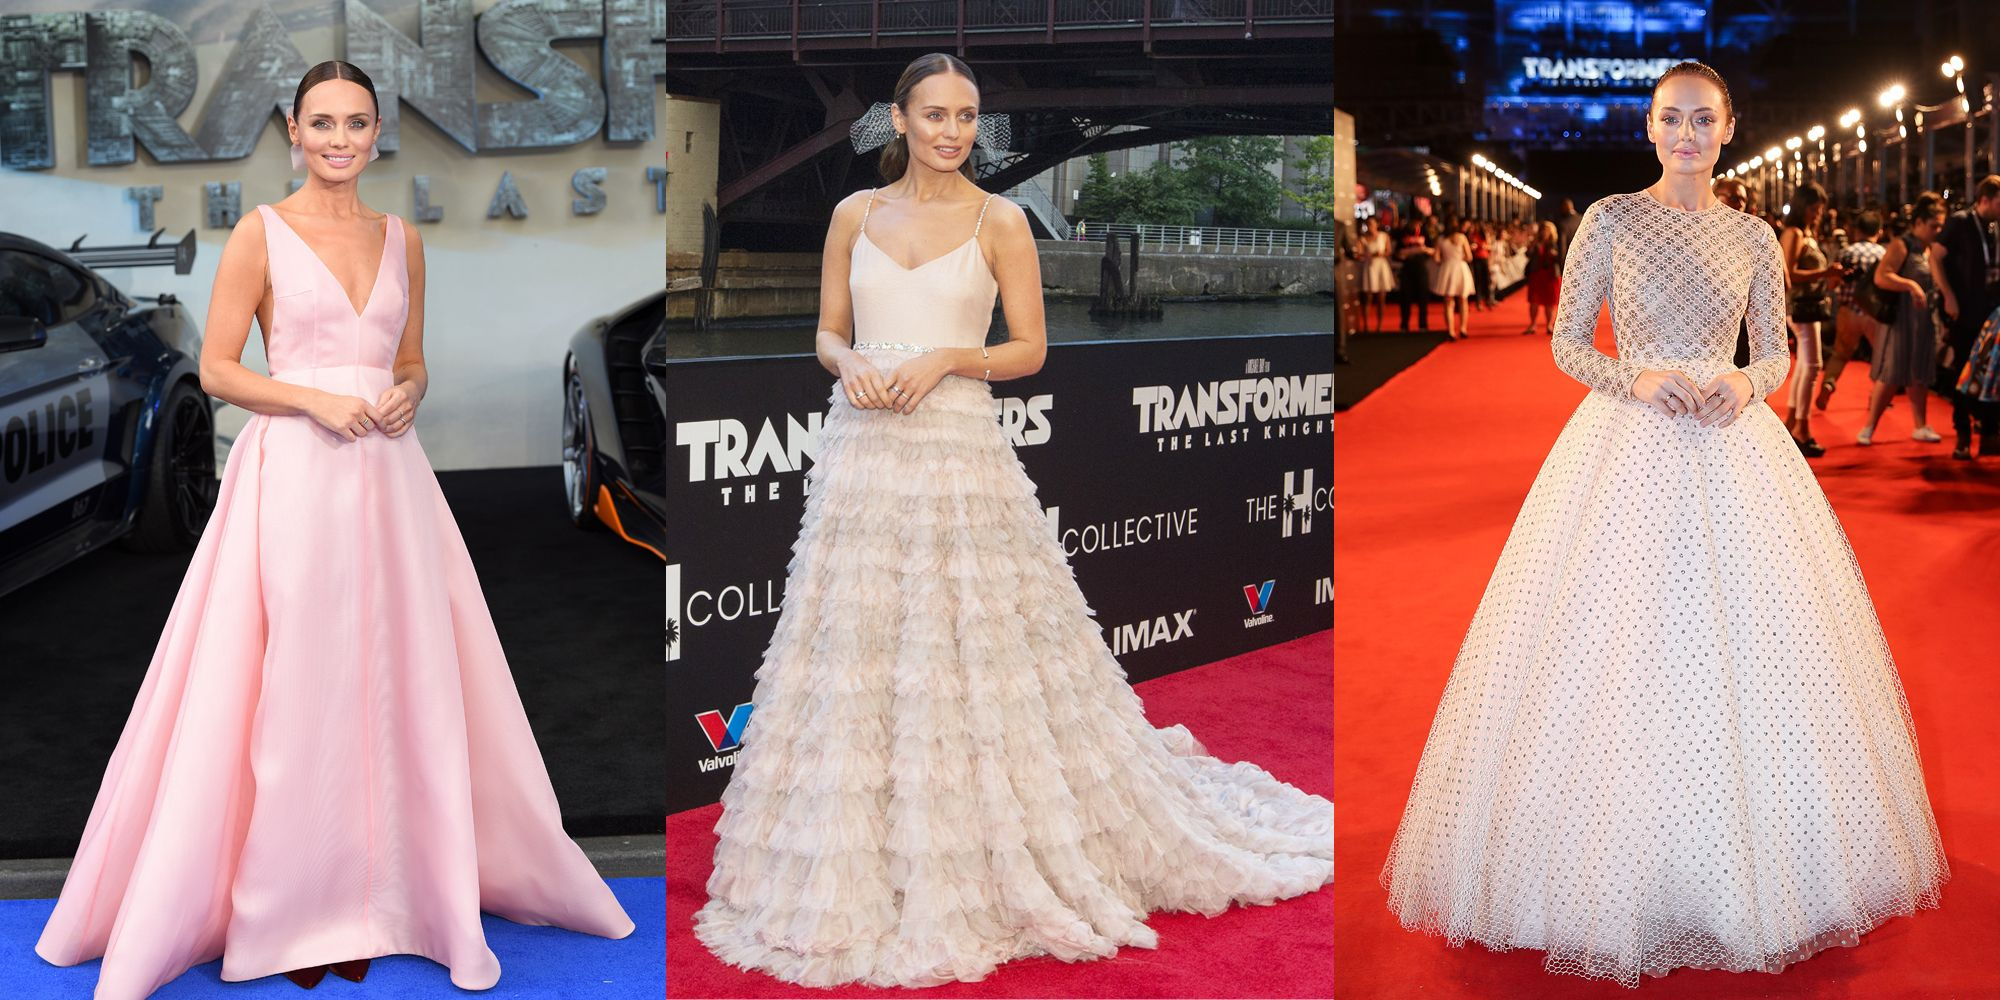 Wedding Fashion Inspiration From The Red Carpet The: All The Bridal Inspiration You'll Ever Need–From An Up-and